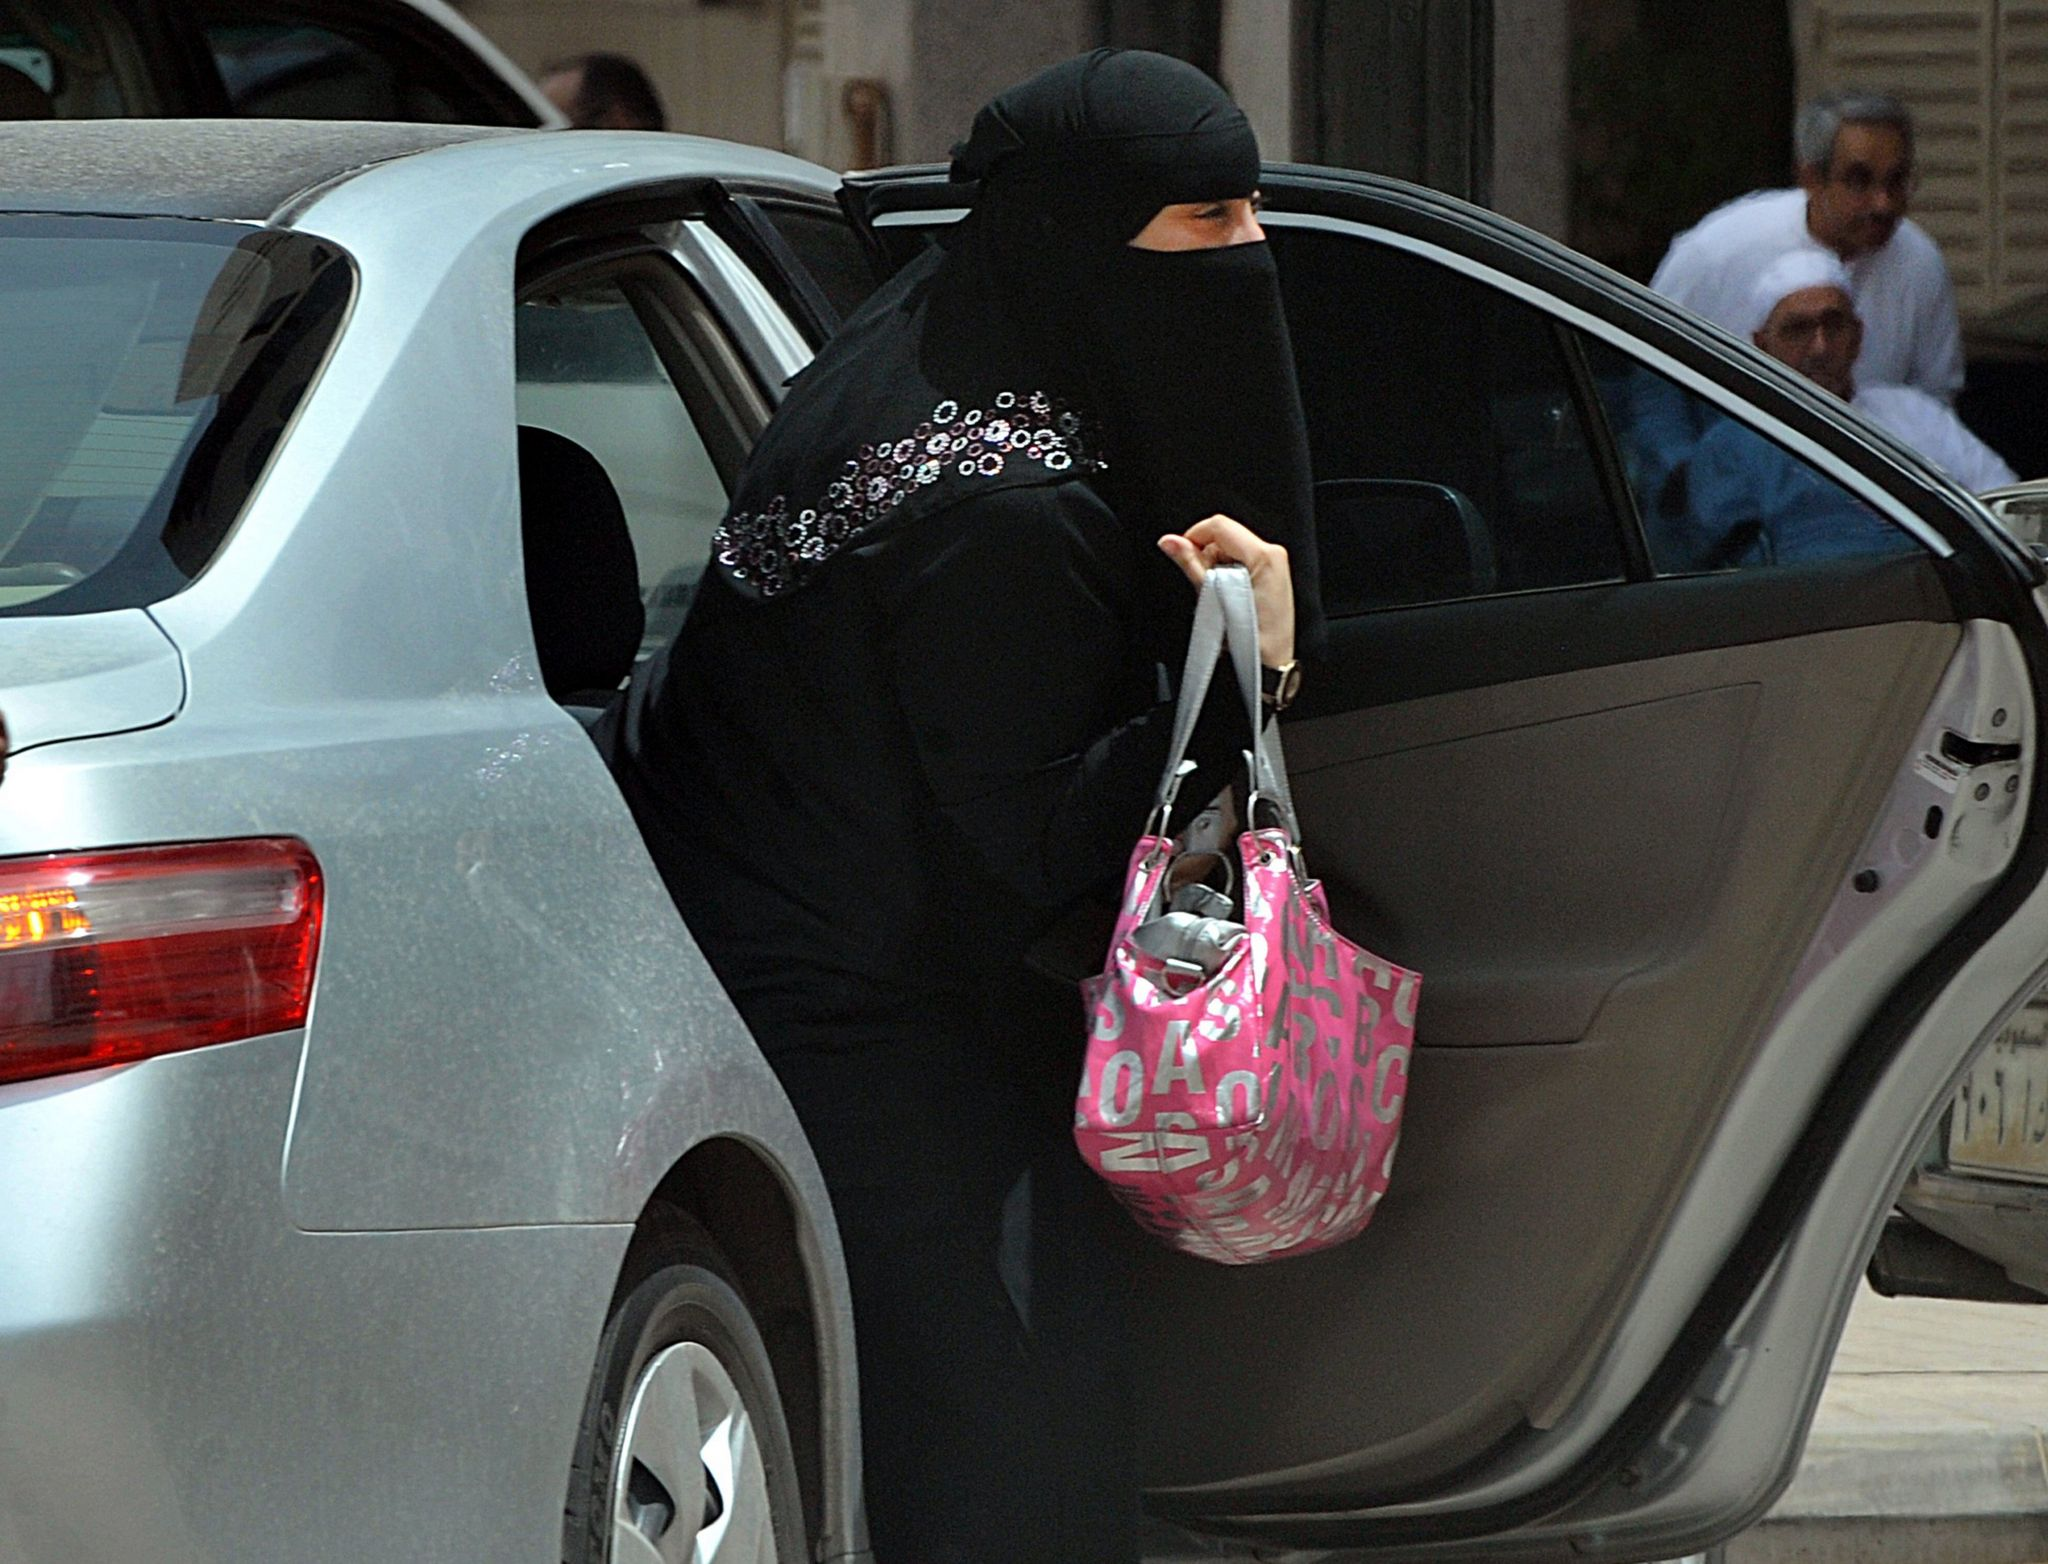 A Saudi woman gets out of a car after being given a ride by her driver in Riyadh on 26 May, 2011